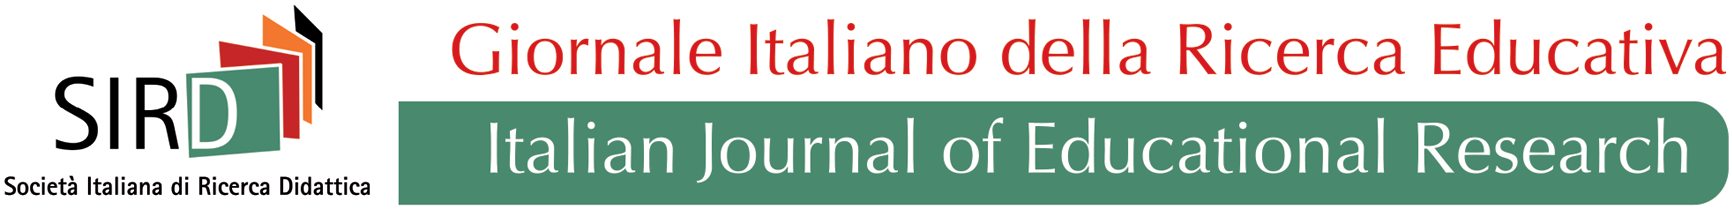 Italian Journal of Educational Research (IJEduR)